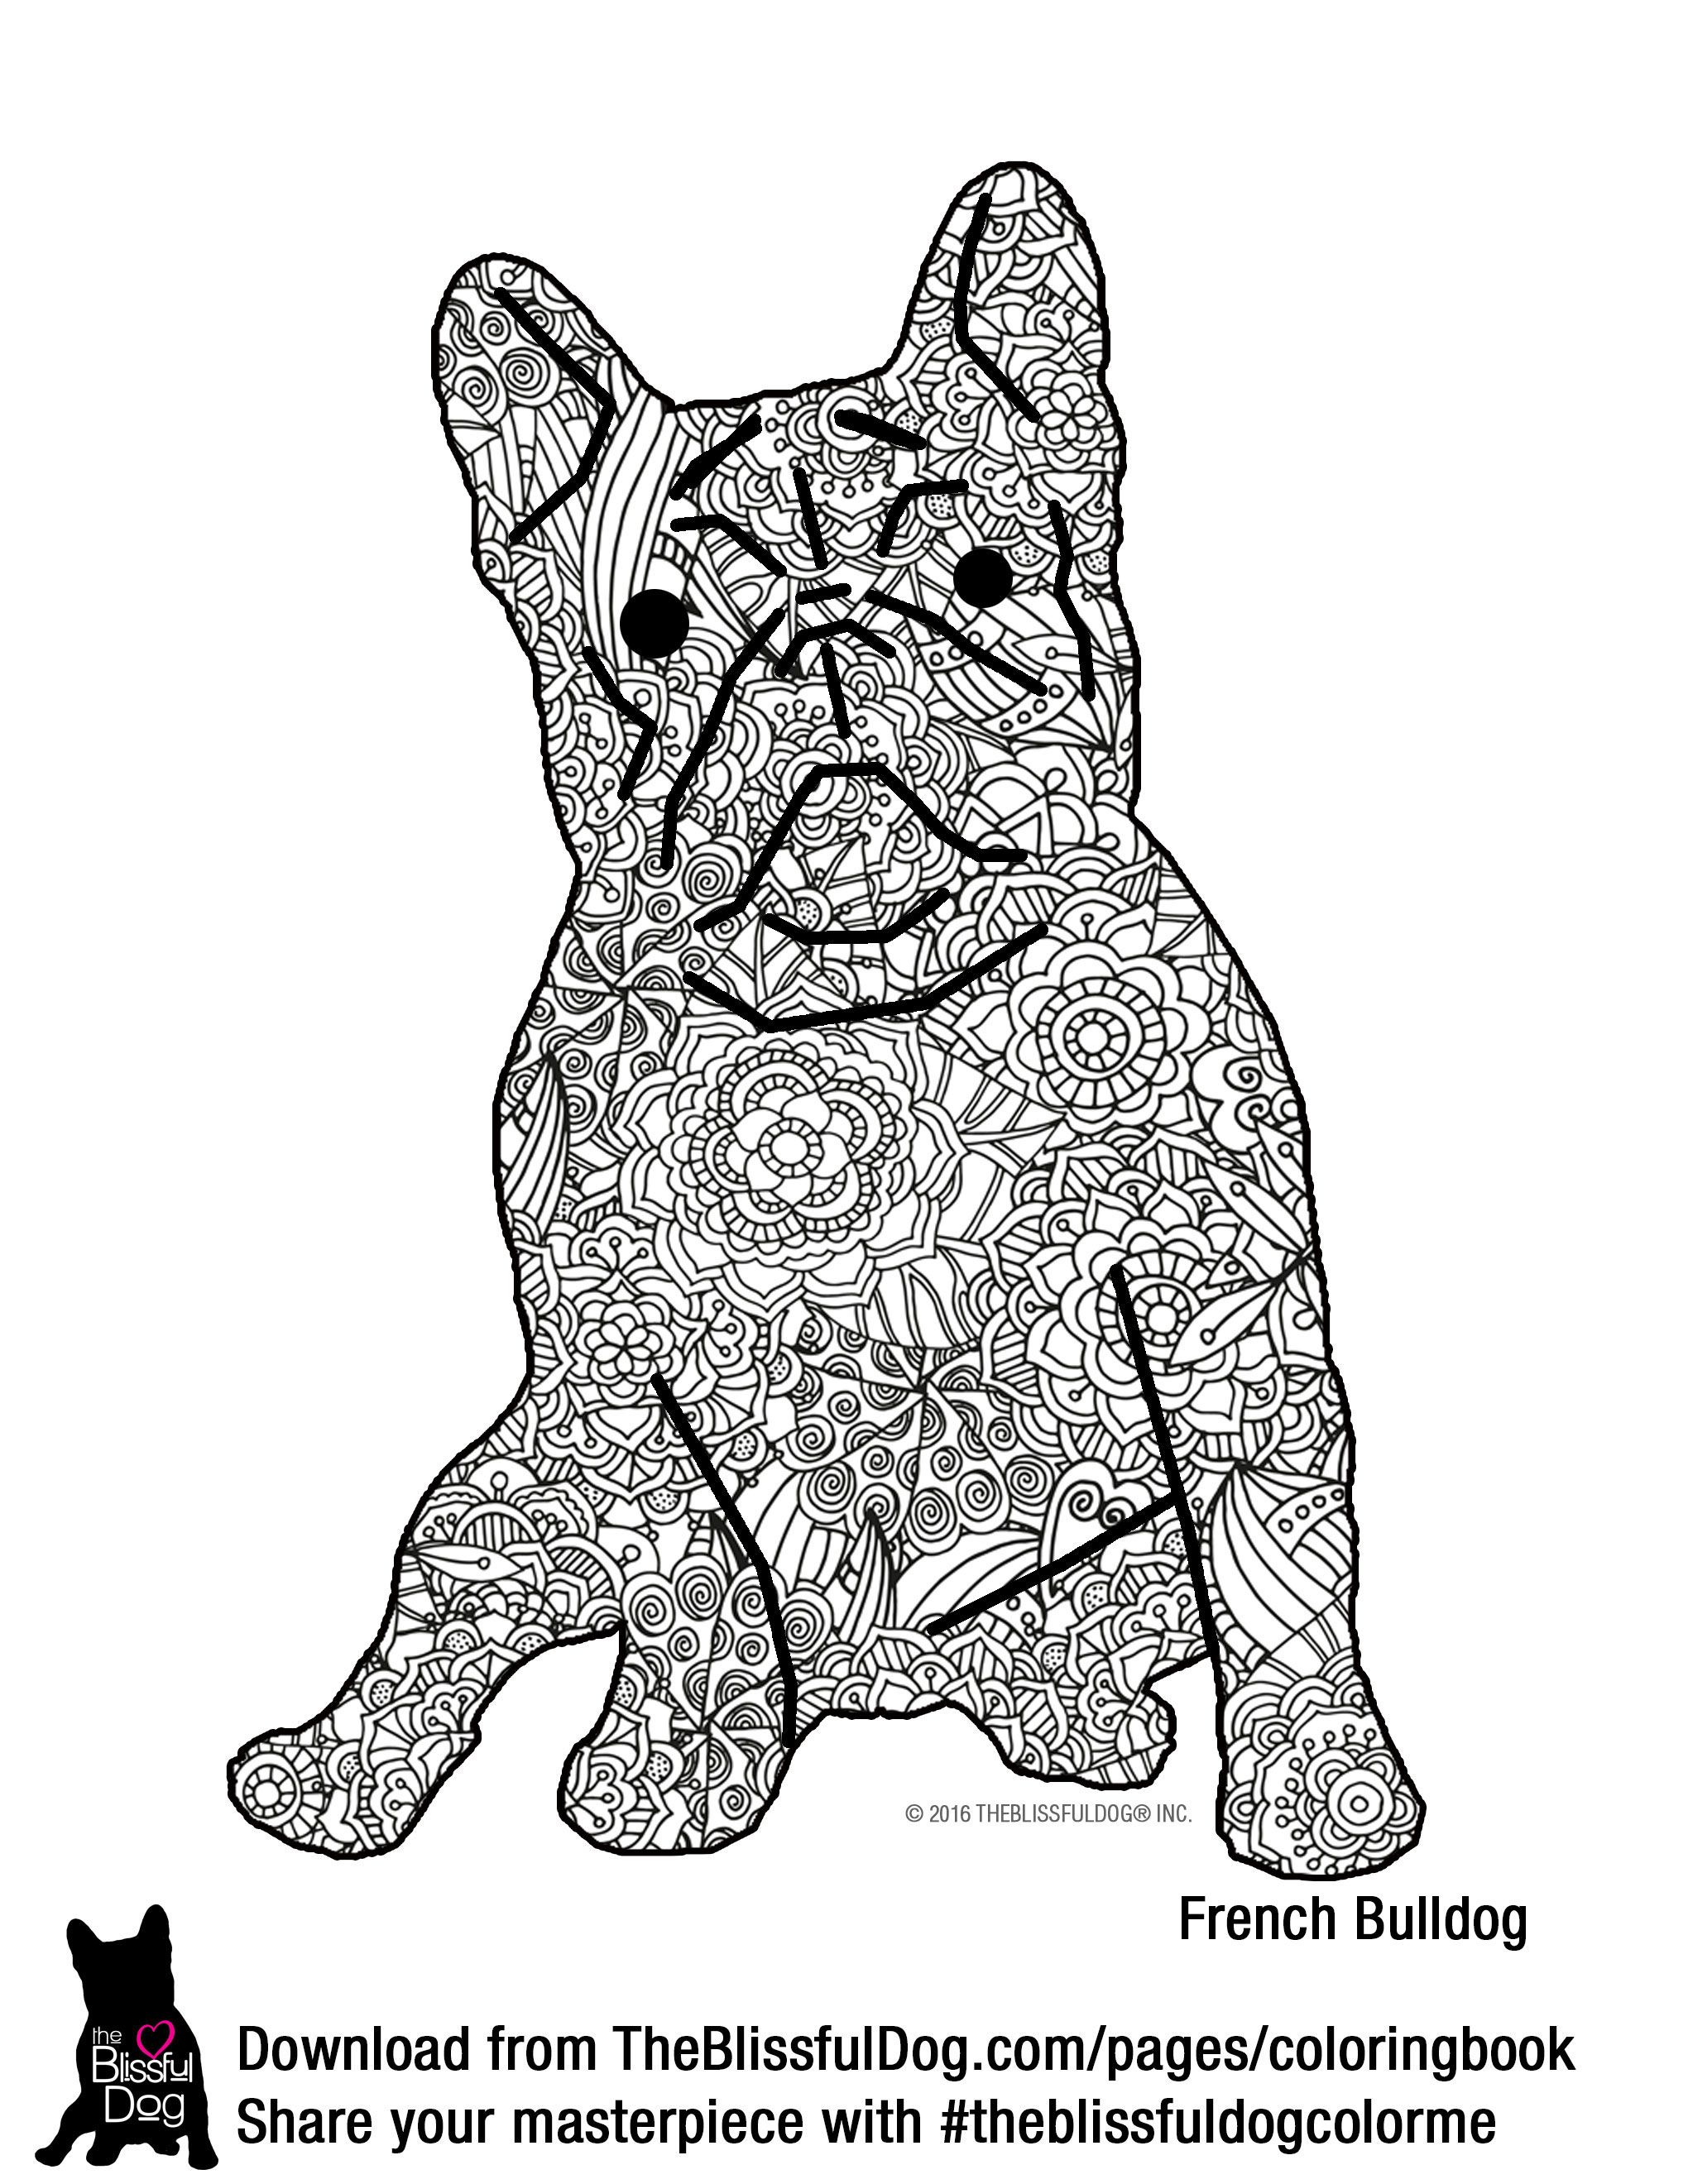 The Blissful Dog French Bulldog Coloring Page. BIG file so